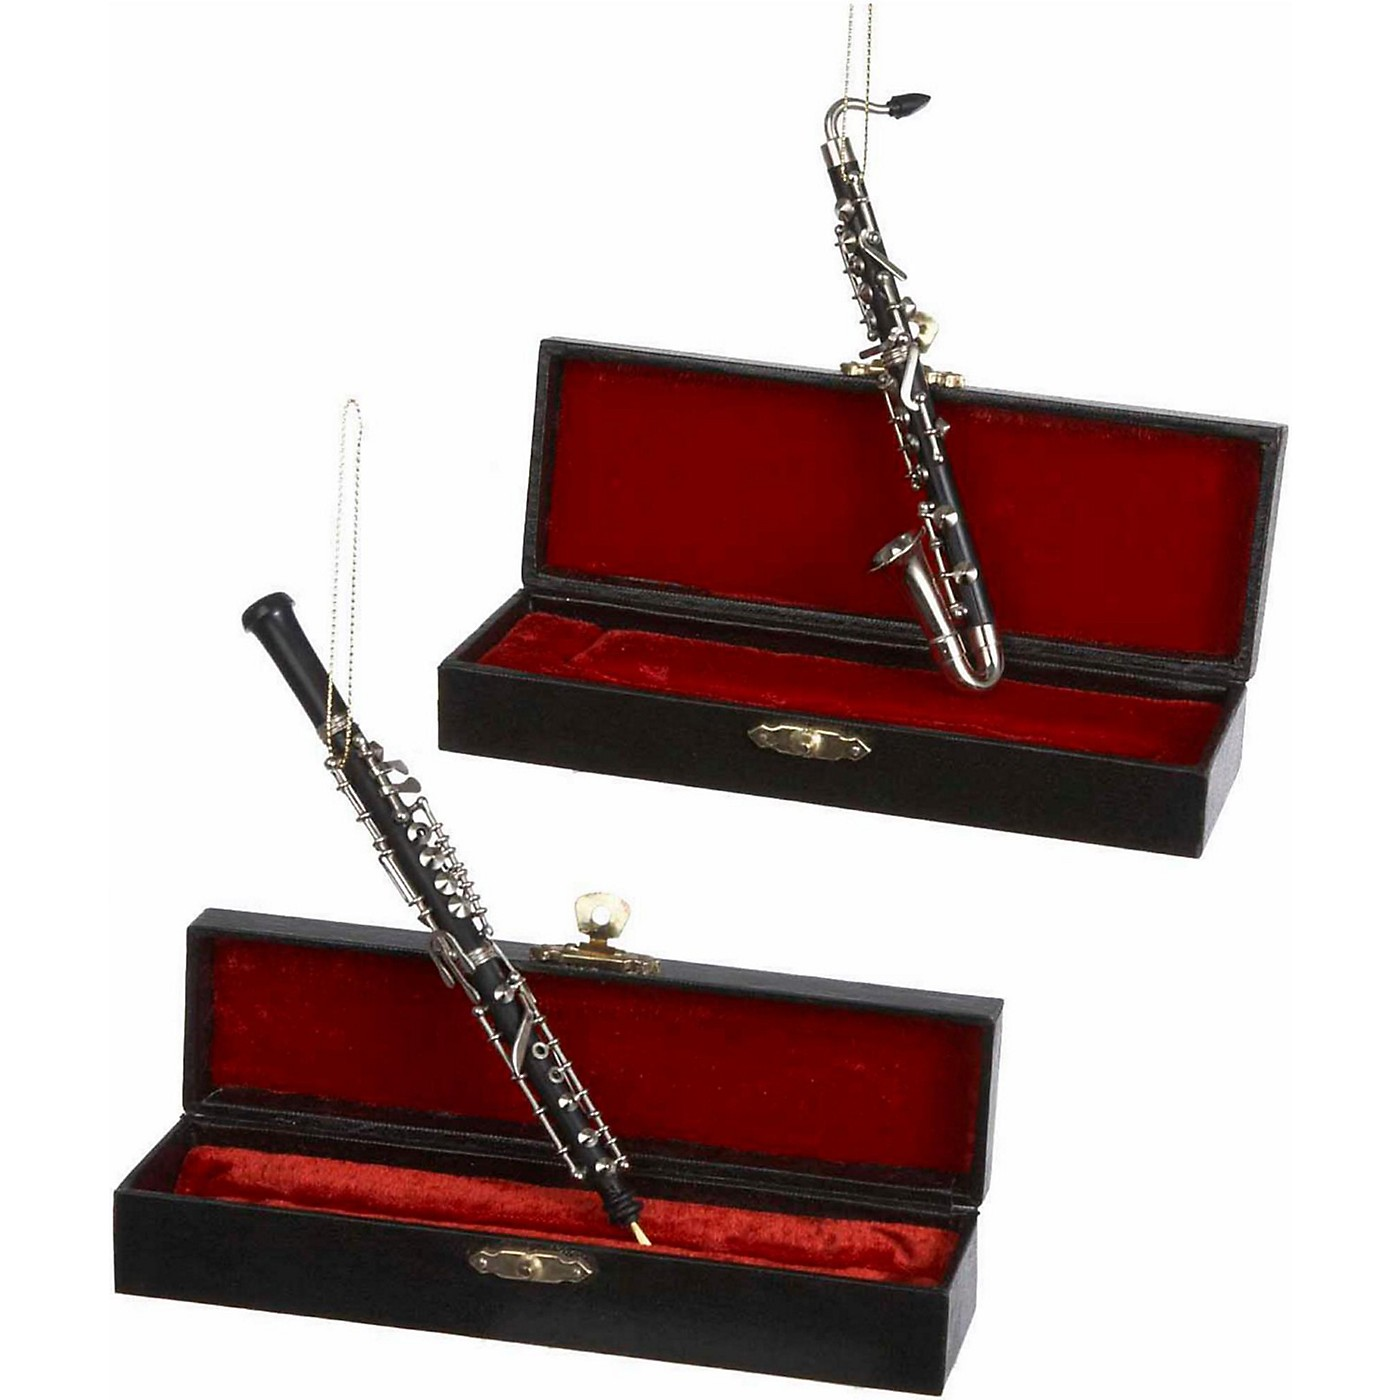 Kurt S. Adler Bass Clarinet/Oboe Ornaments thumbnail